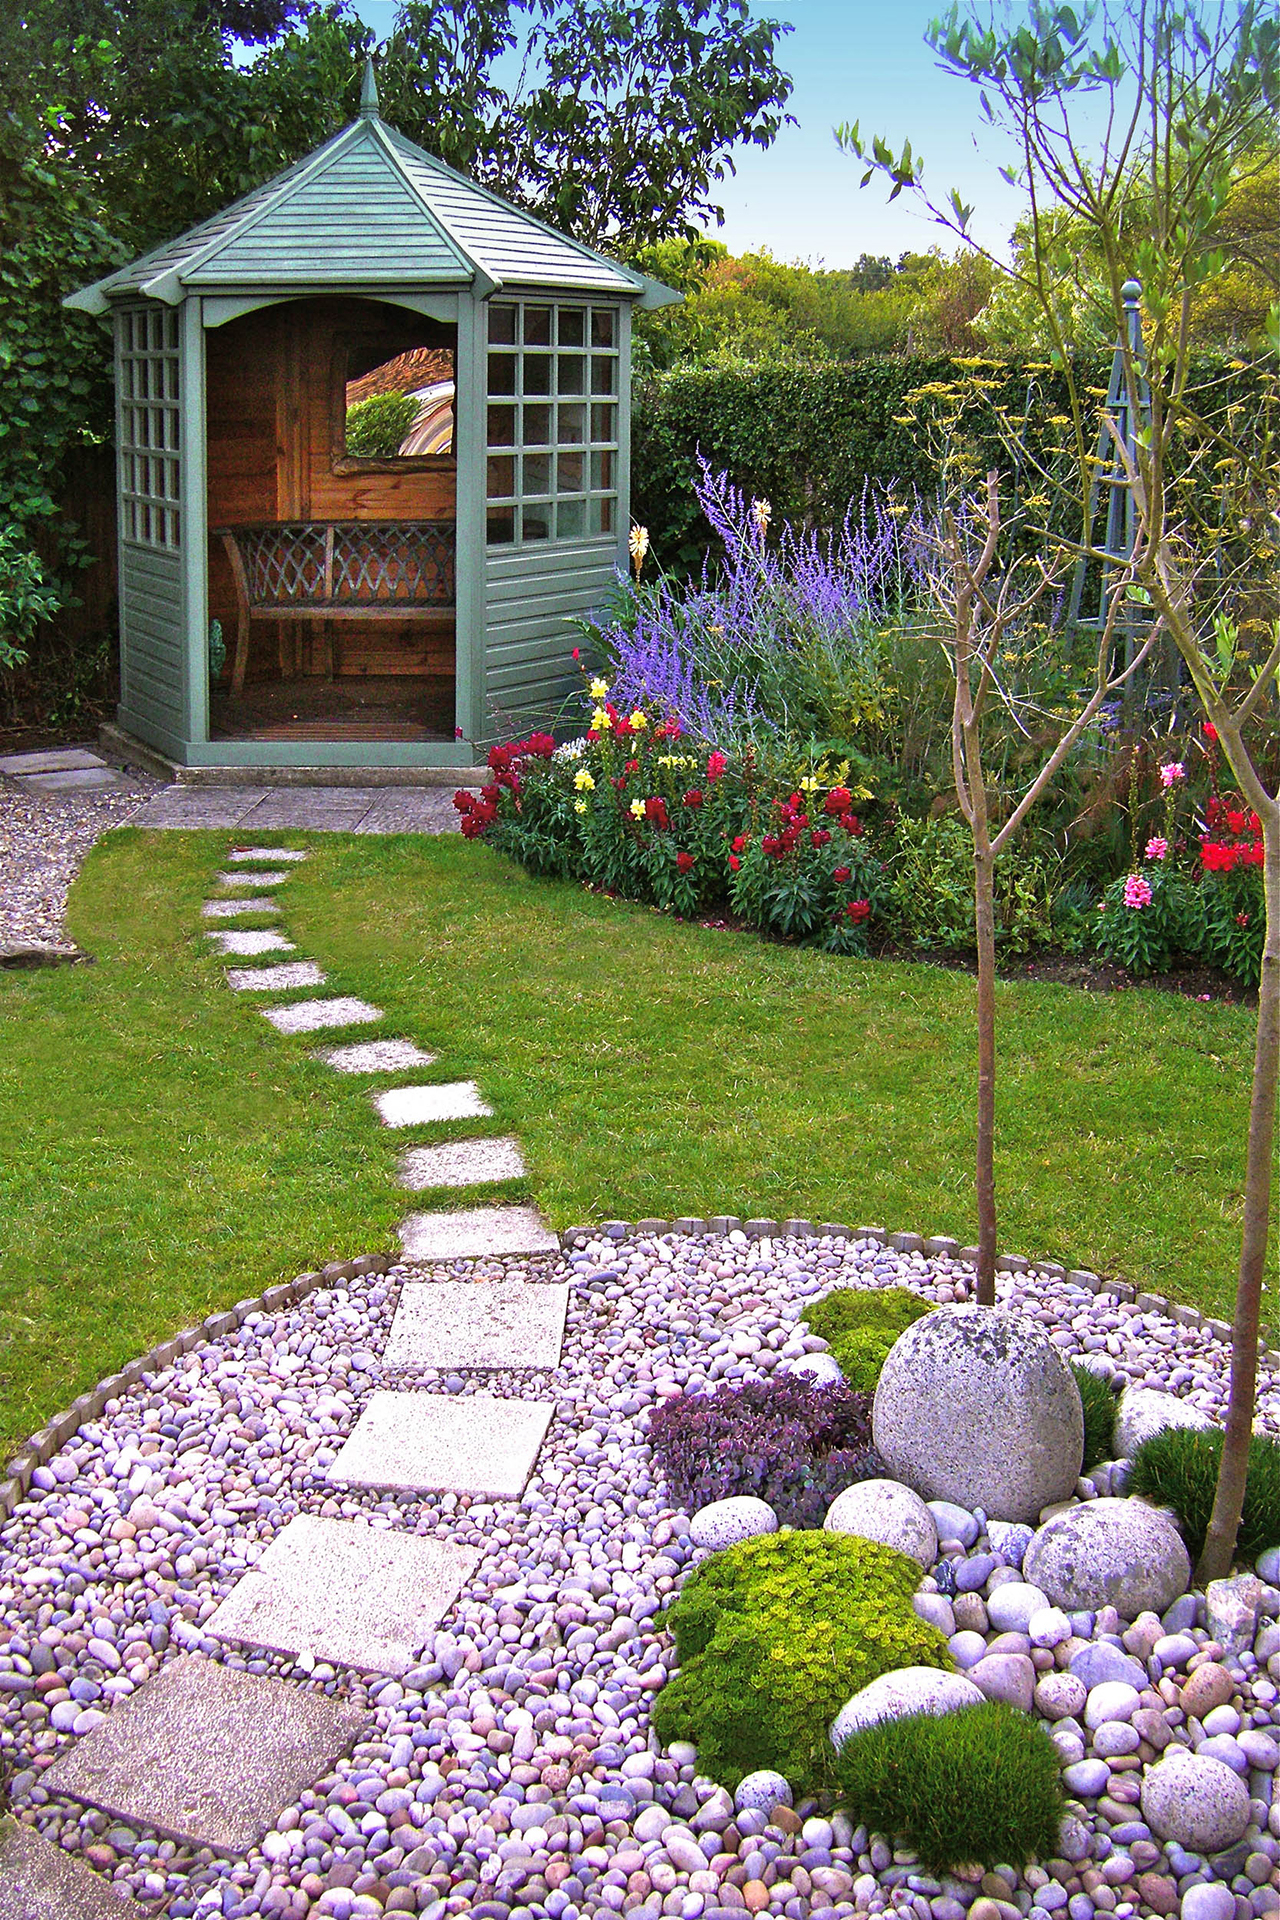 50 Best Backyard Landscaping Ideas And Designs In 2019 within Backyard Landscape Ideas